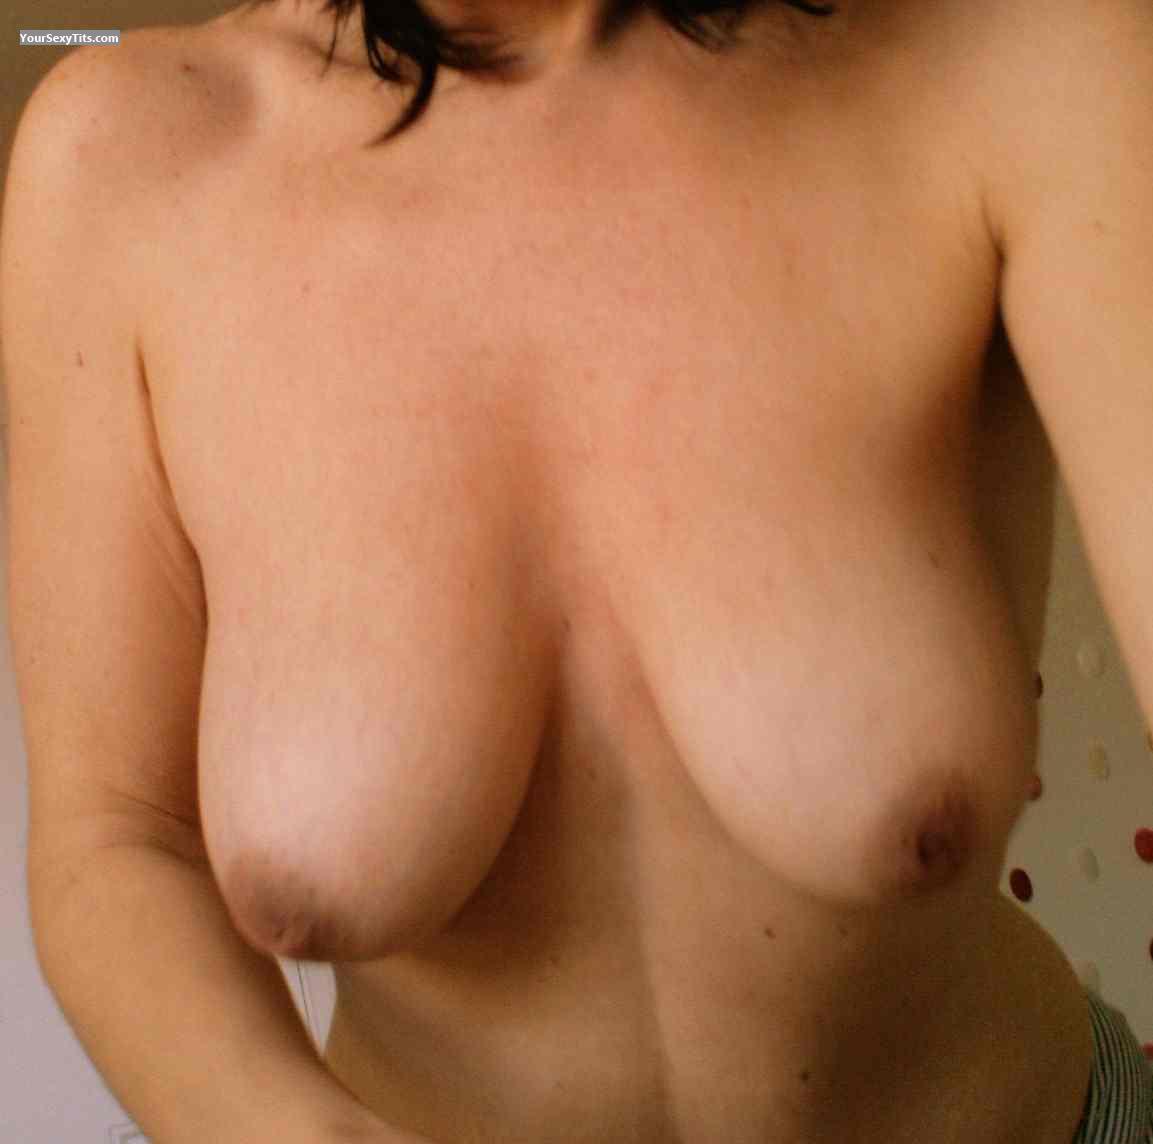 Tit Flash: Medium Tits - Piluca from Spain